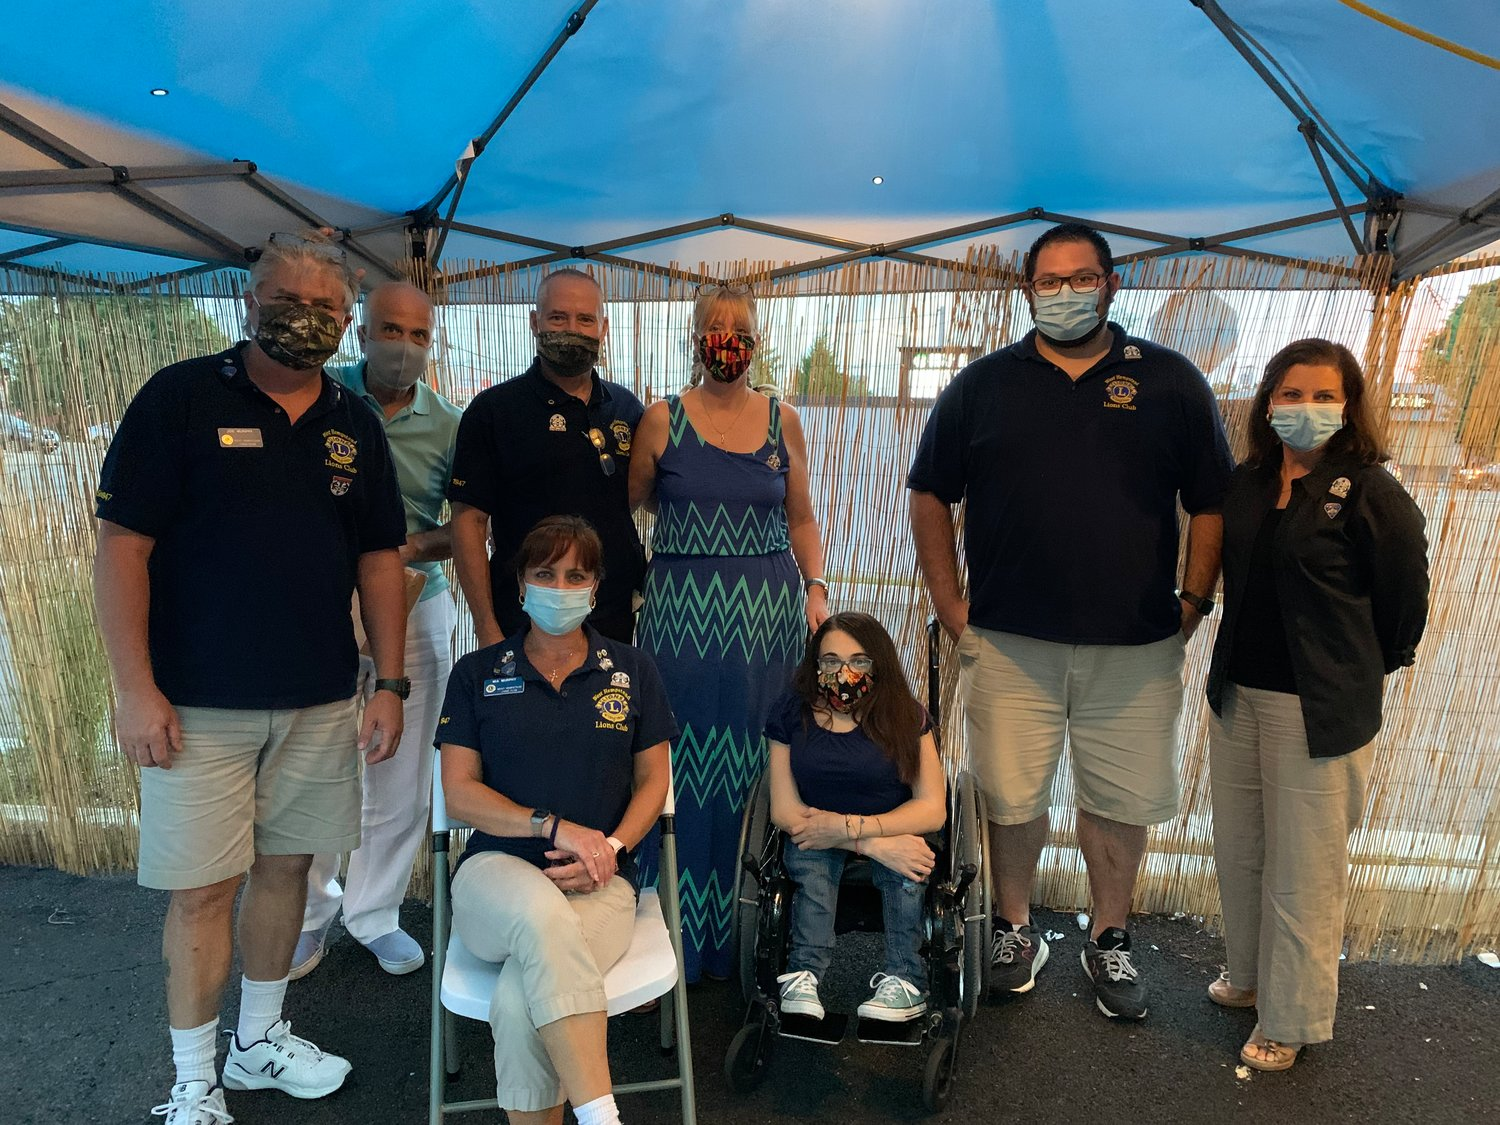 The West Hempstead Lions Club held their annual installation dinner earlier this summer.